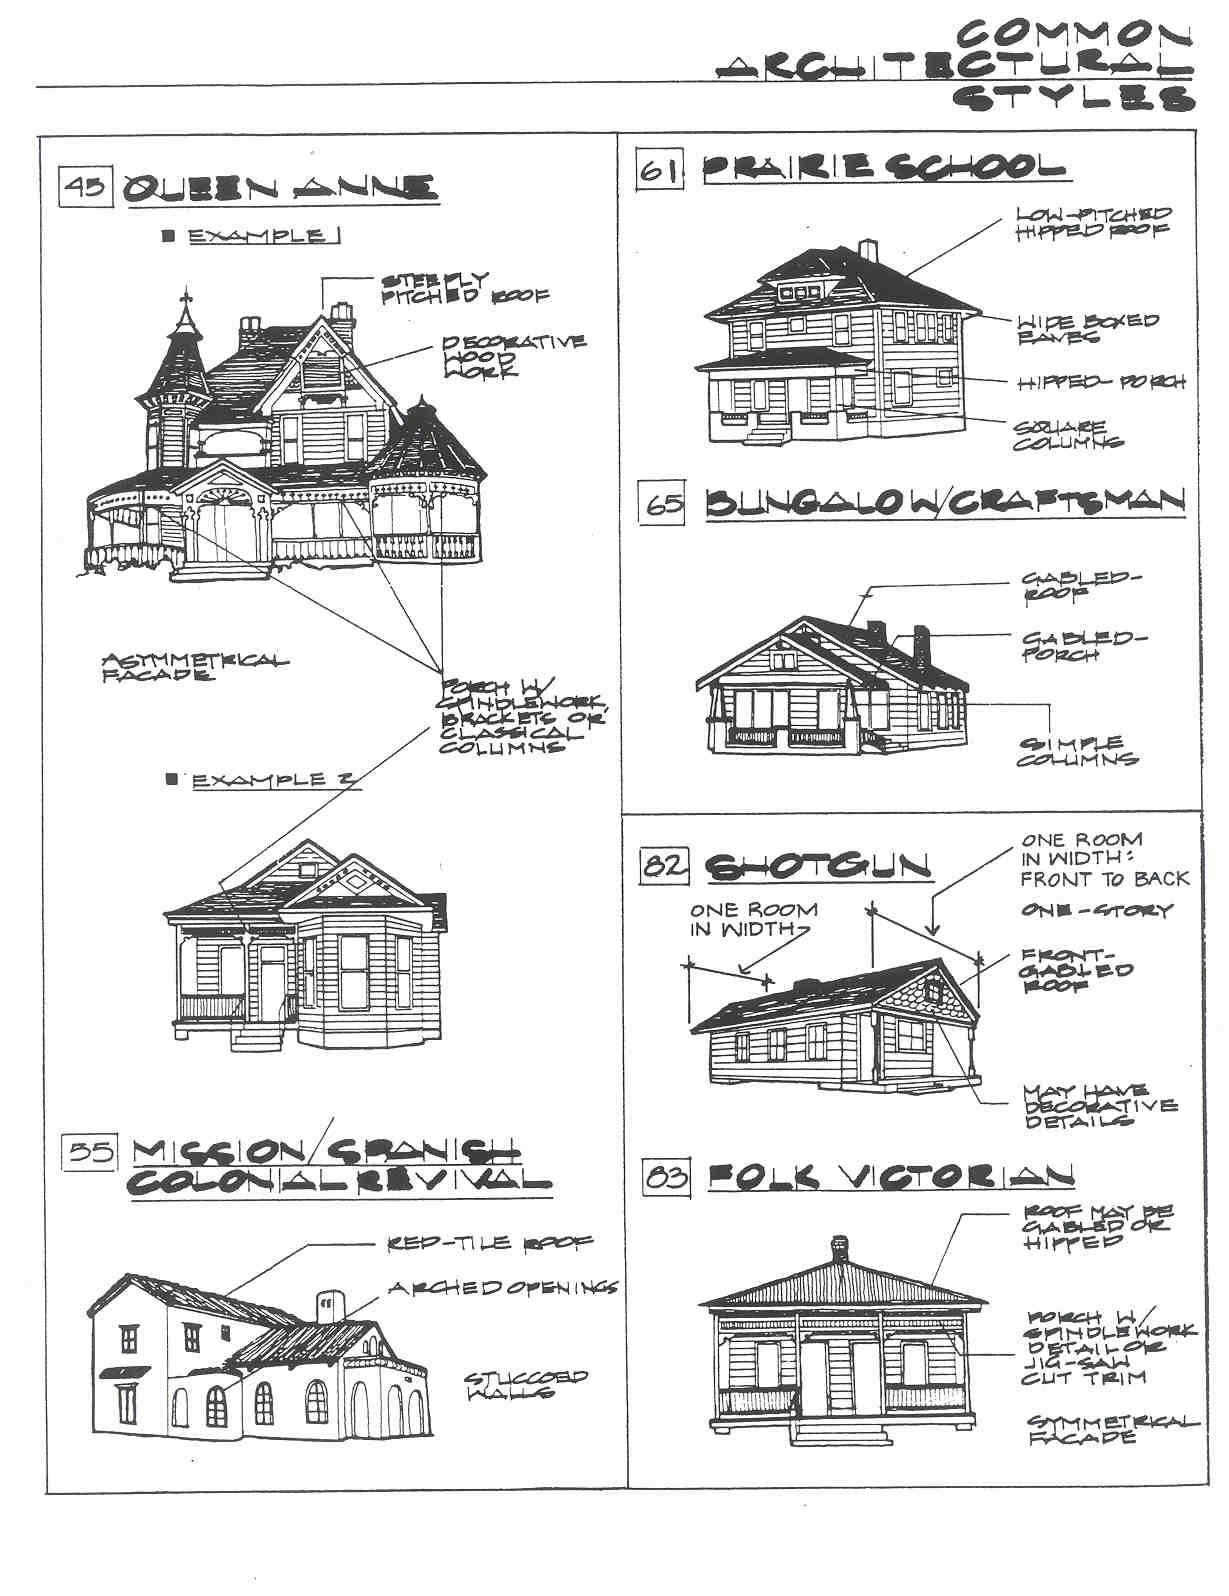 roof styles architecture | j home ideas | Pinterest | Roof styles ...